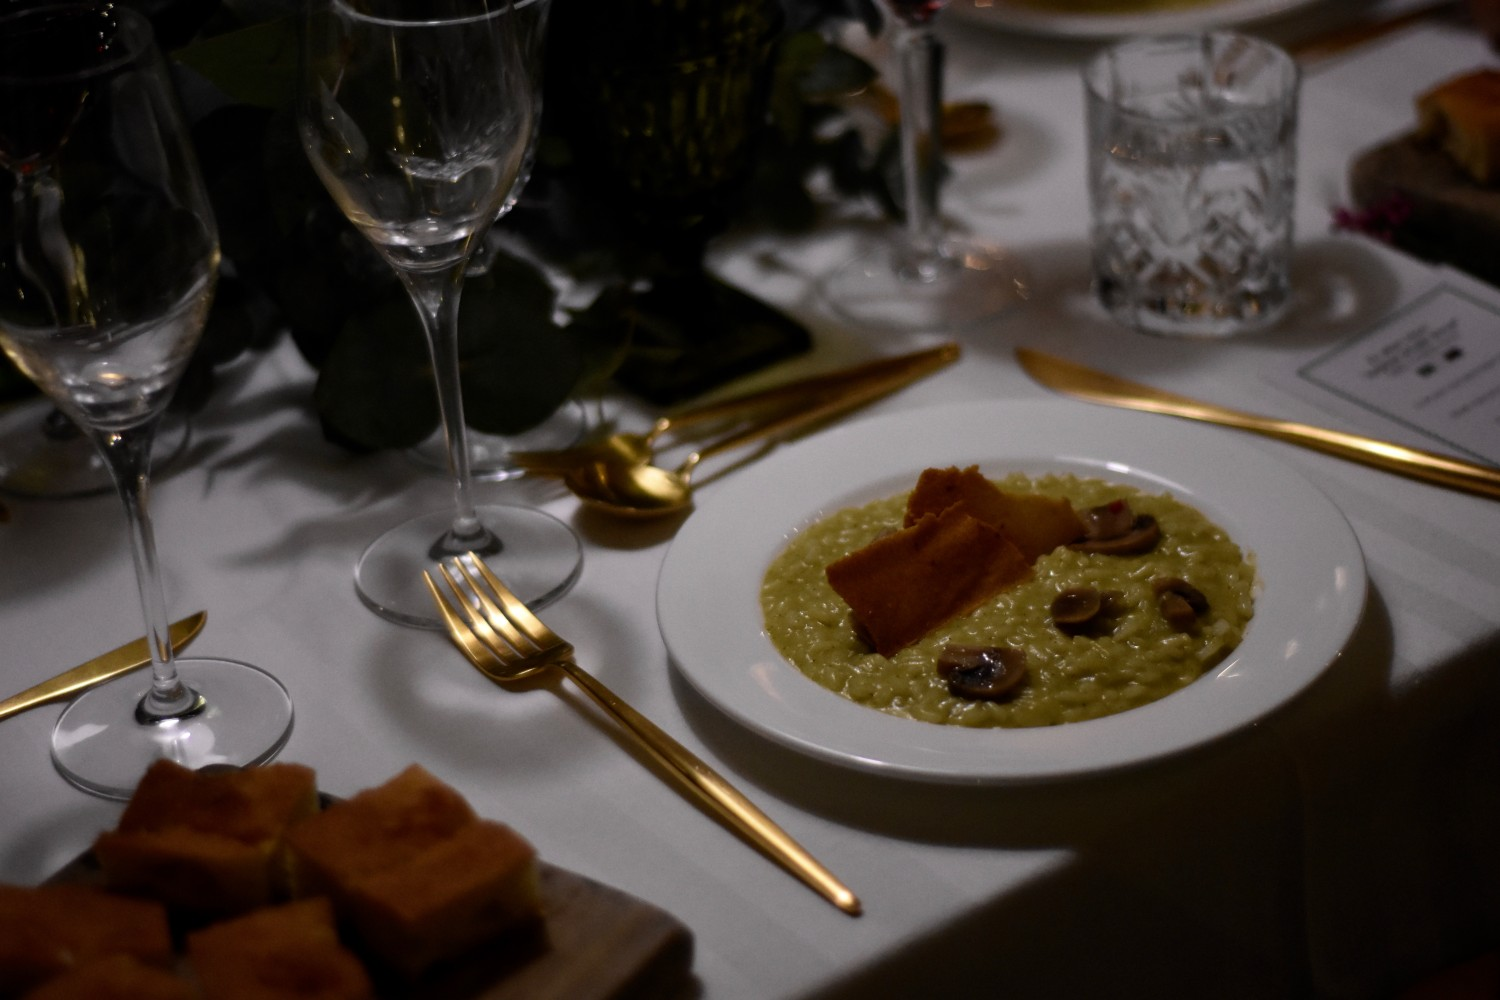 chefmade-laltro-annemette-voss-private-dining35